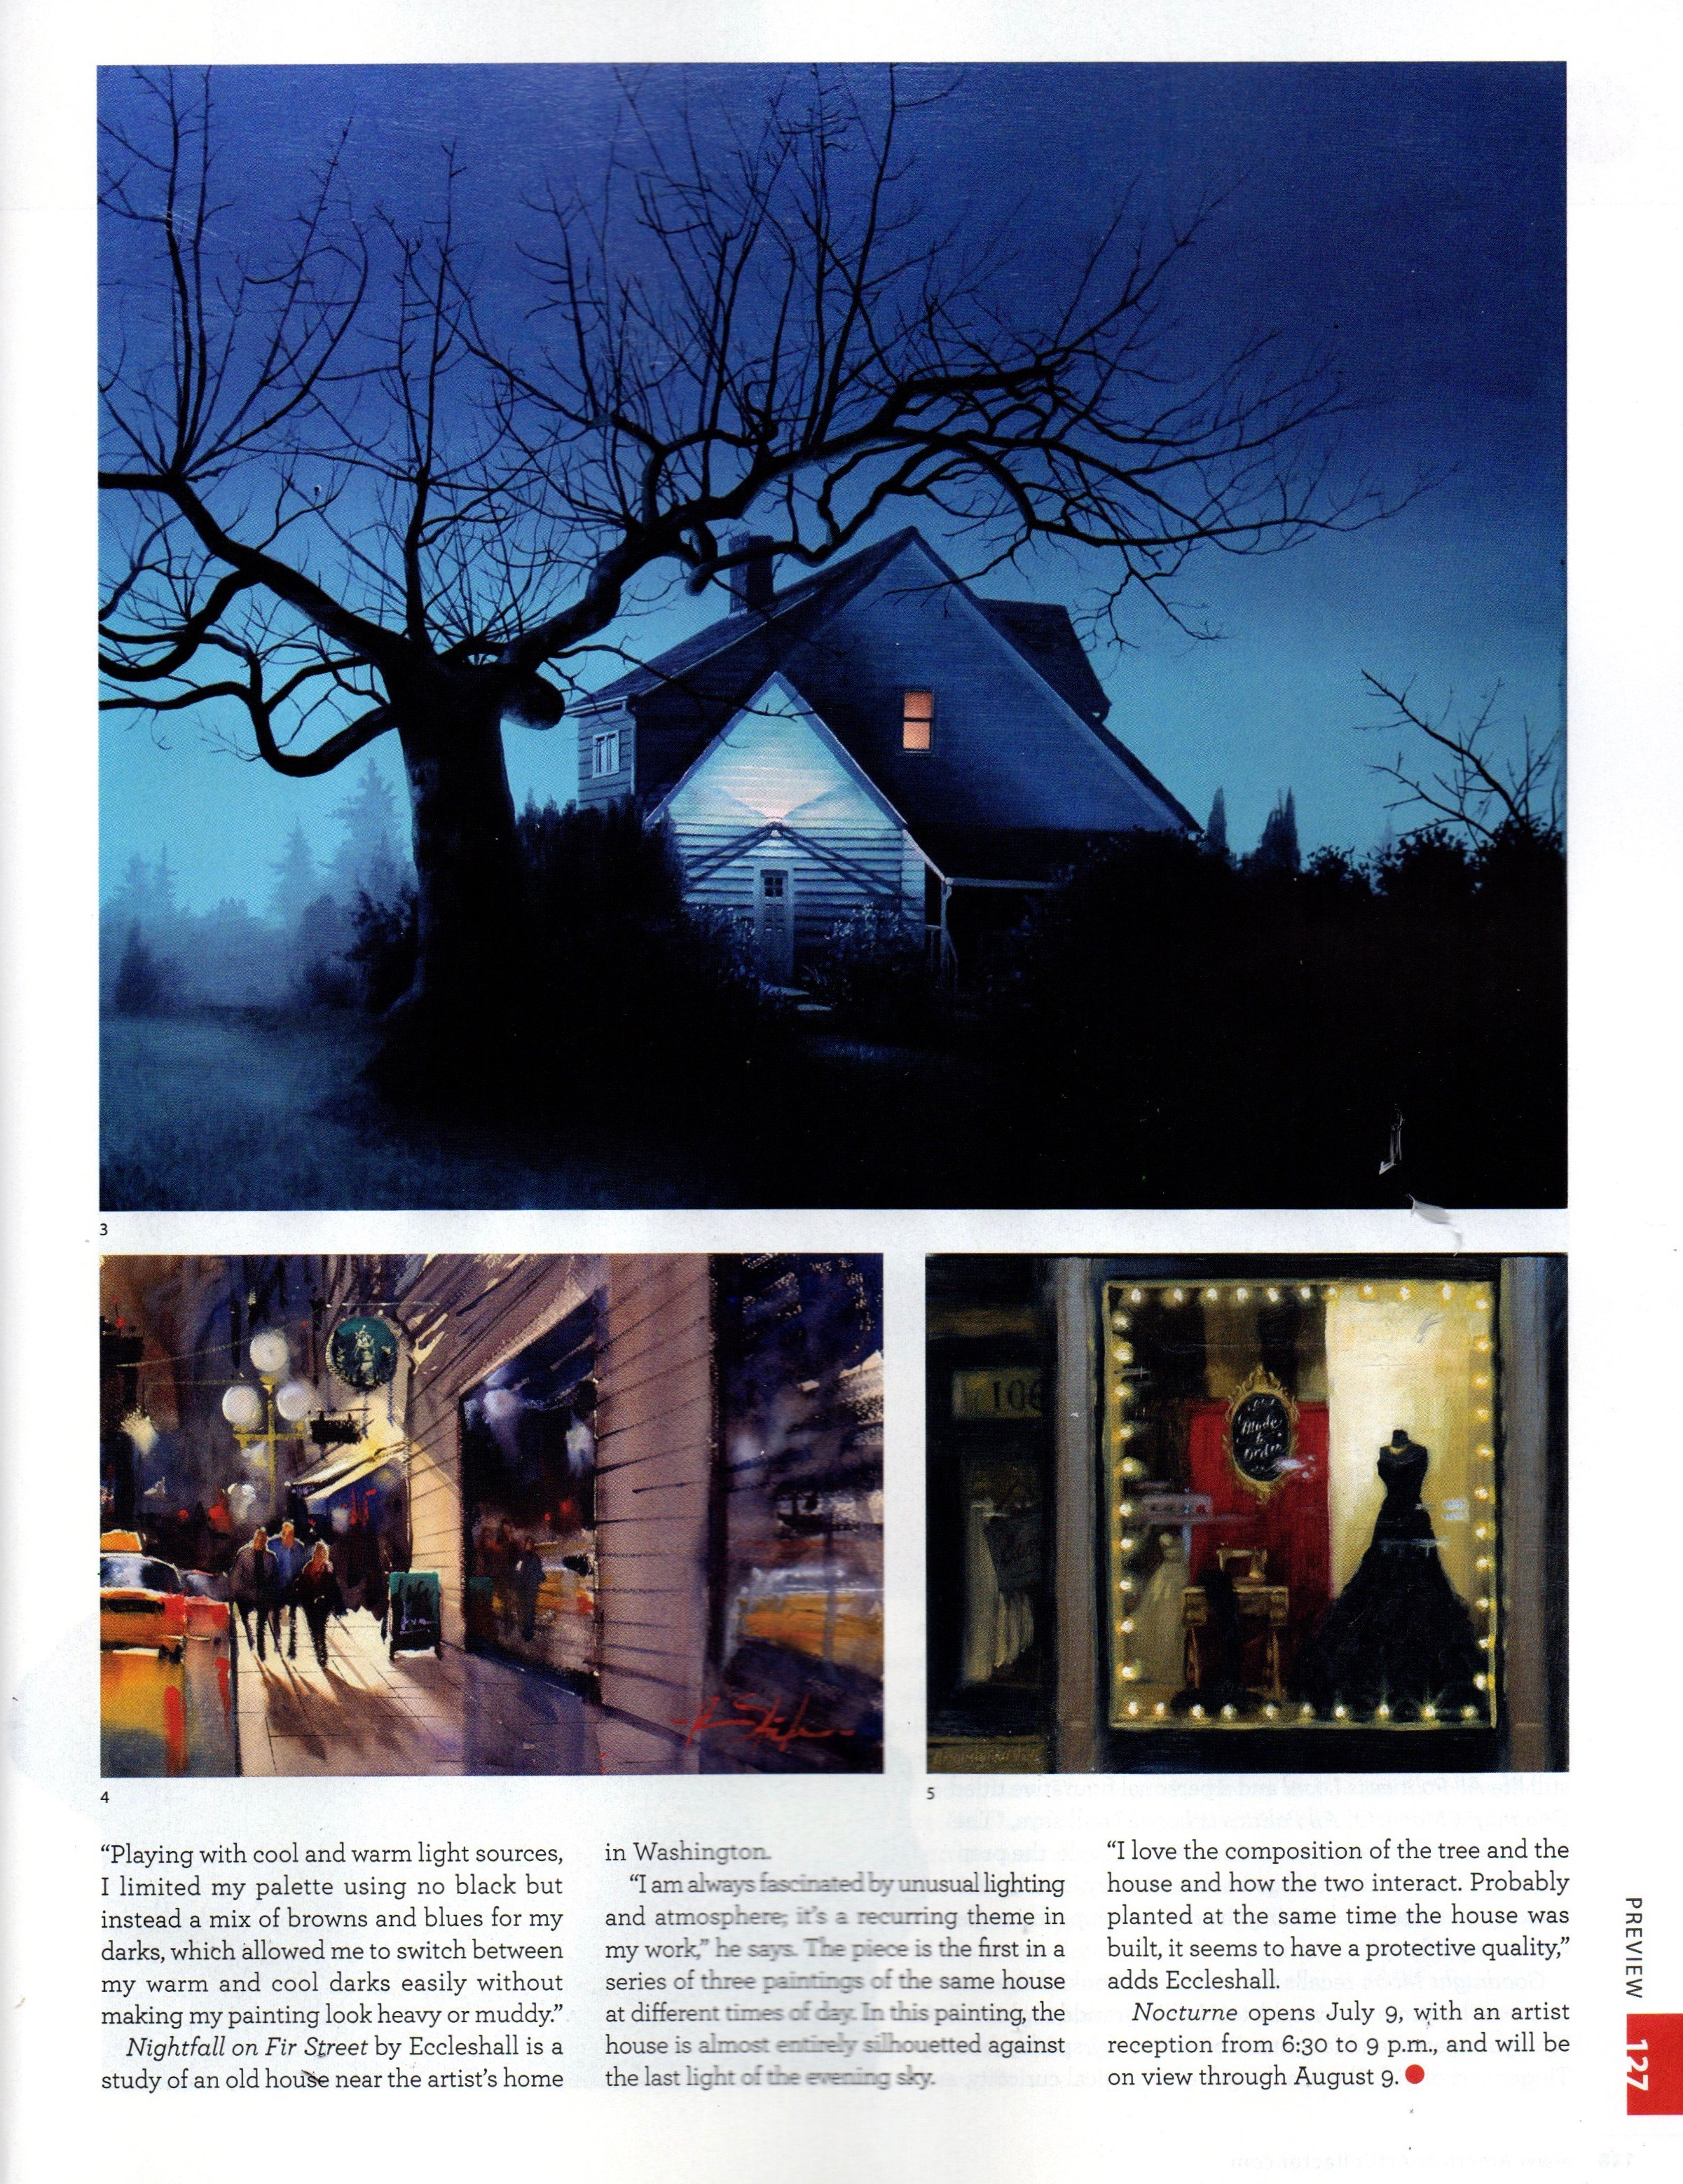 Andy Eccleshall in American Art Collector